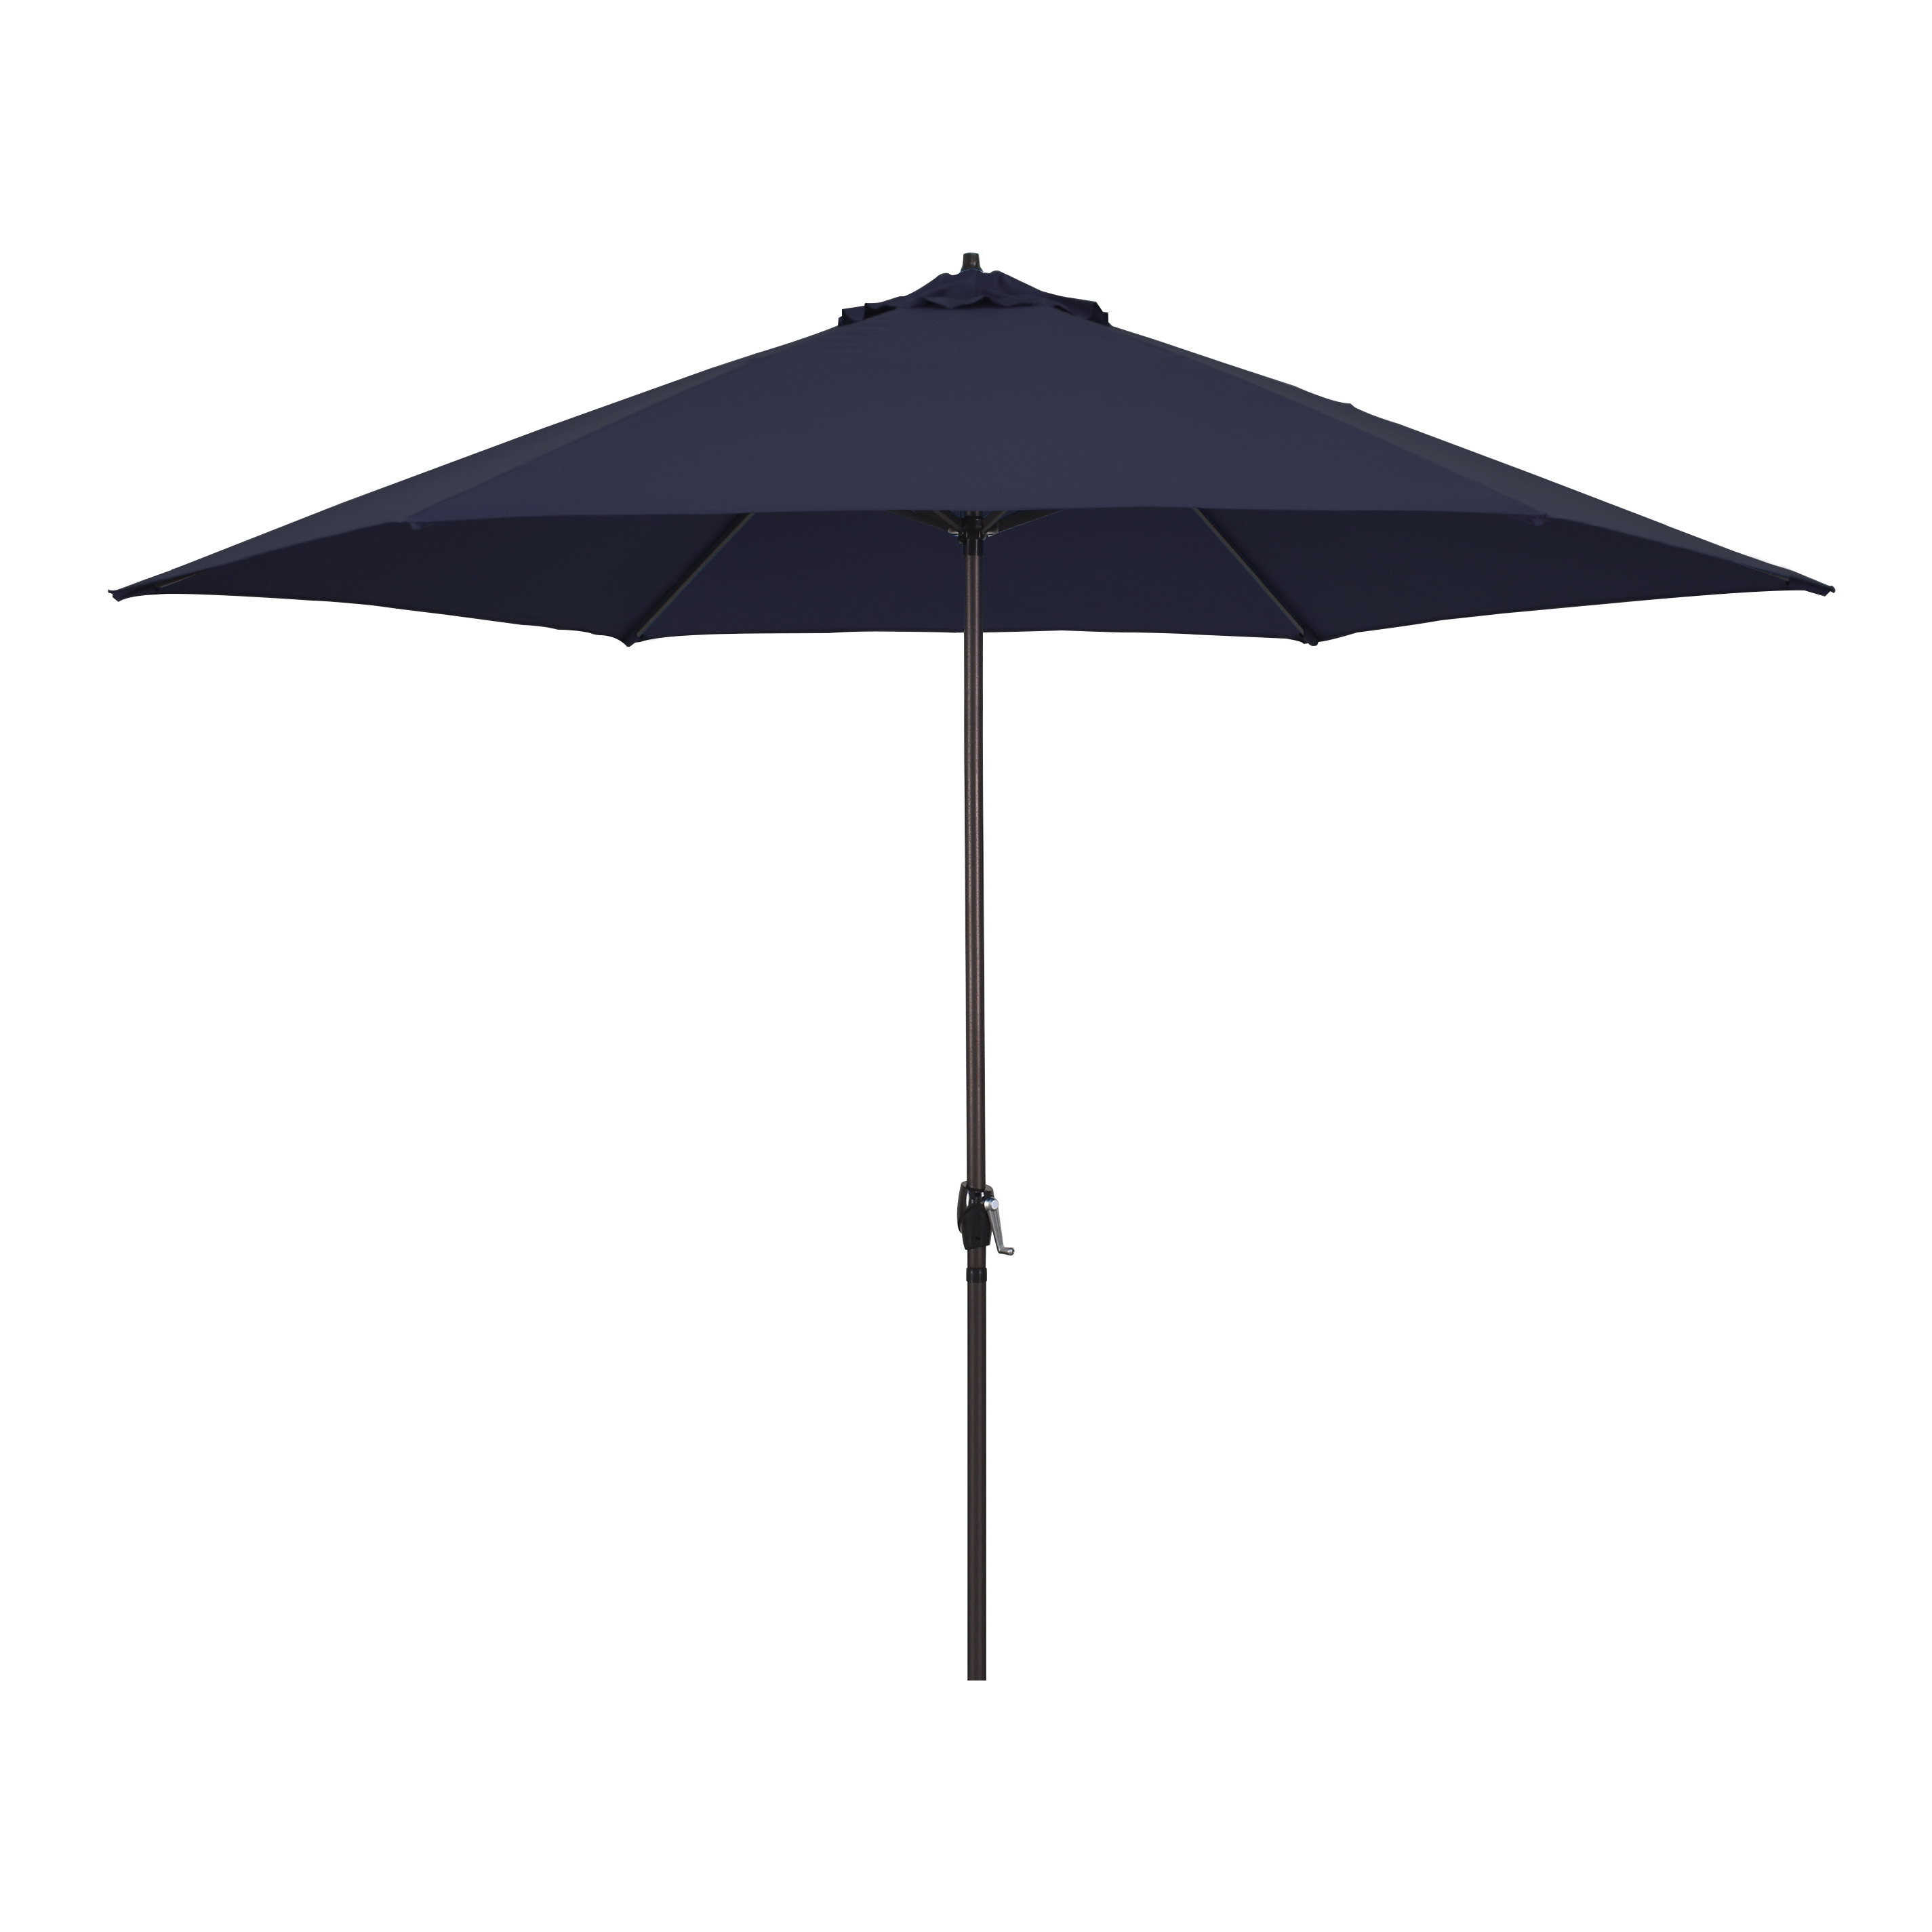 Mcdougal 11' Market Umbrella In Trendy Artrip Market Umbrellas (Gallery 10 of 20)